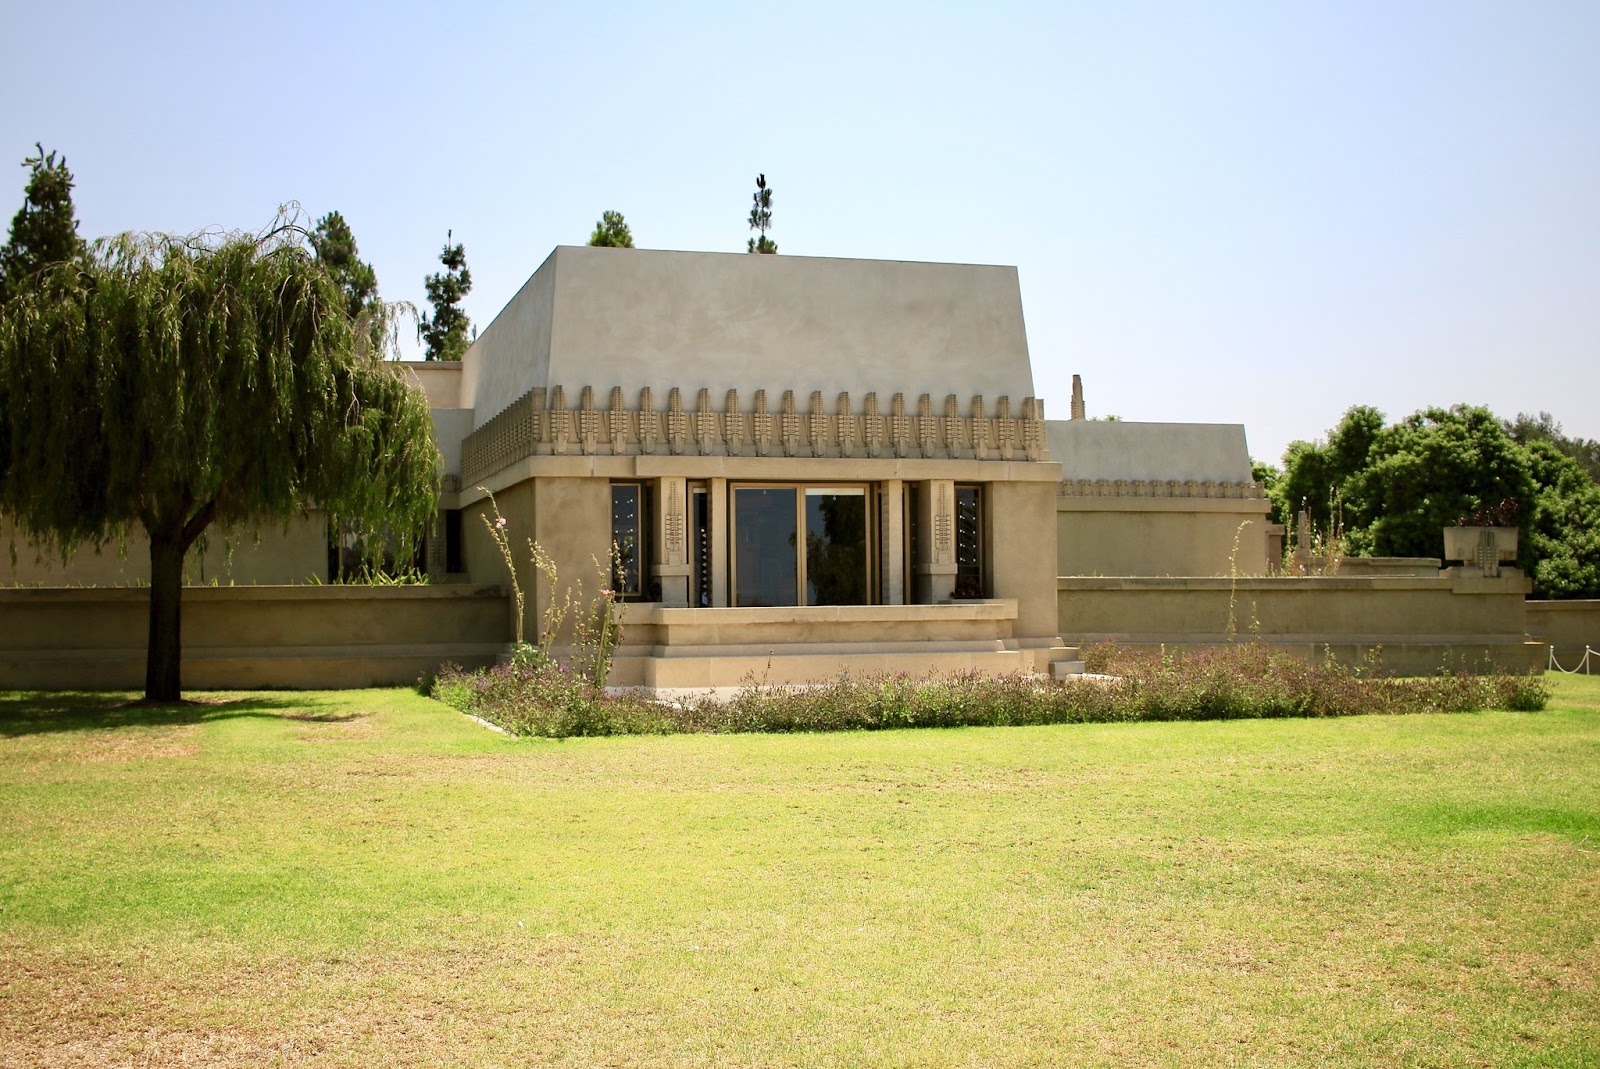 One of the best things to do in Hollywood is to visit Hollyhock House